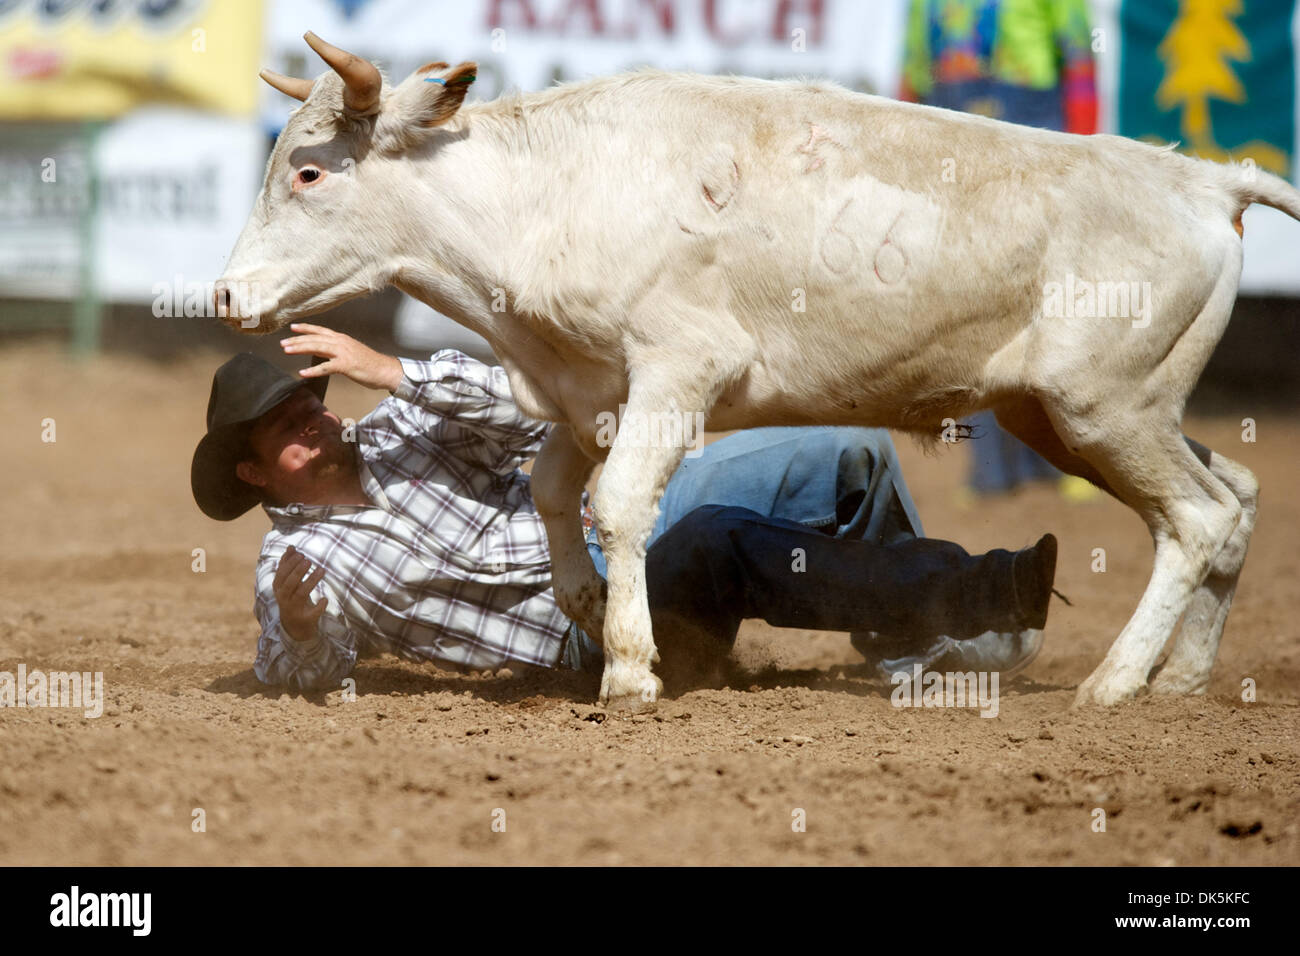 May 7, 2011 - Sonora, California, U.S - Steer wrestler Garrett Colvin of Chowchilla, CA competes at the Mother Lode Round-Up in Sonora, CA. (Credit Image: © Matt Cohen/Southcreek Global/ZUMAPRESS.com) - Stock Image